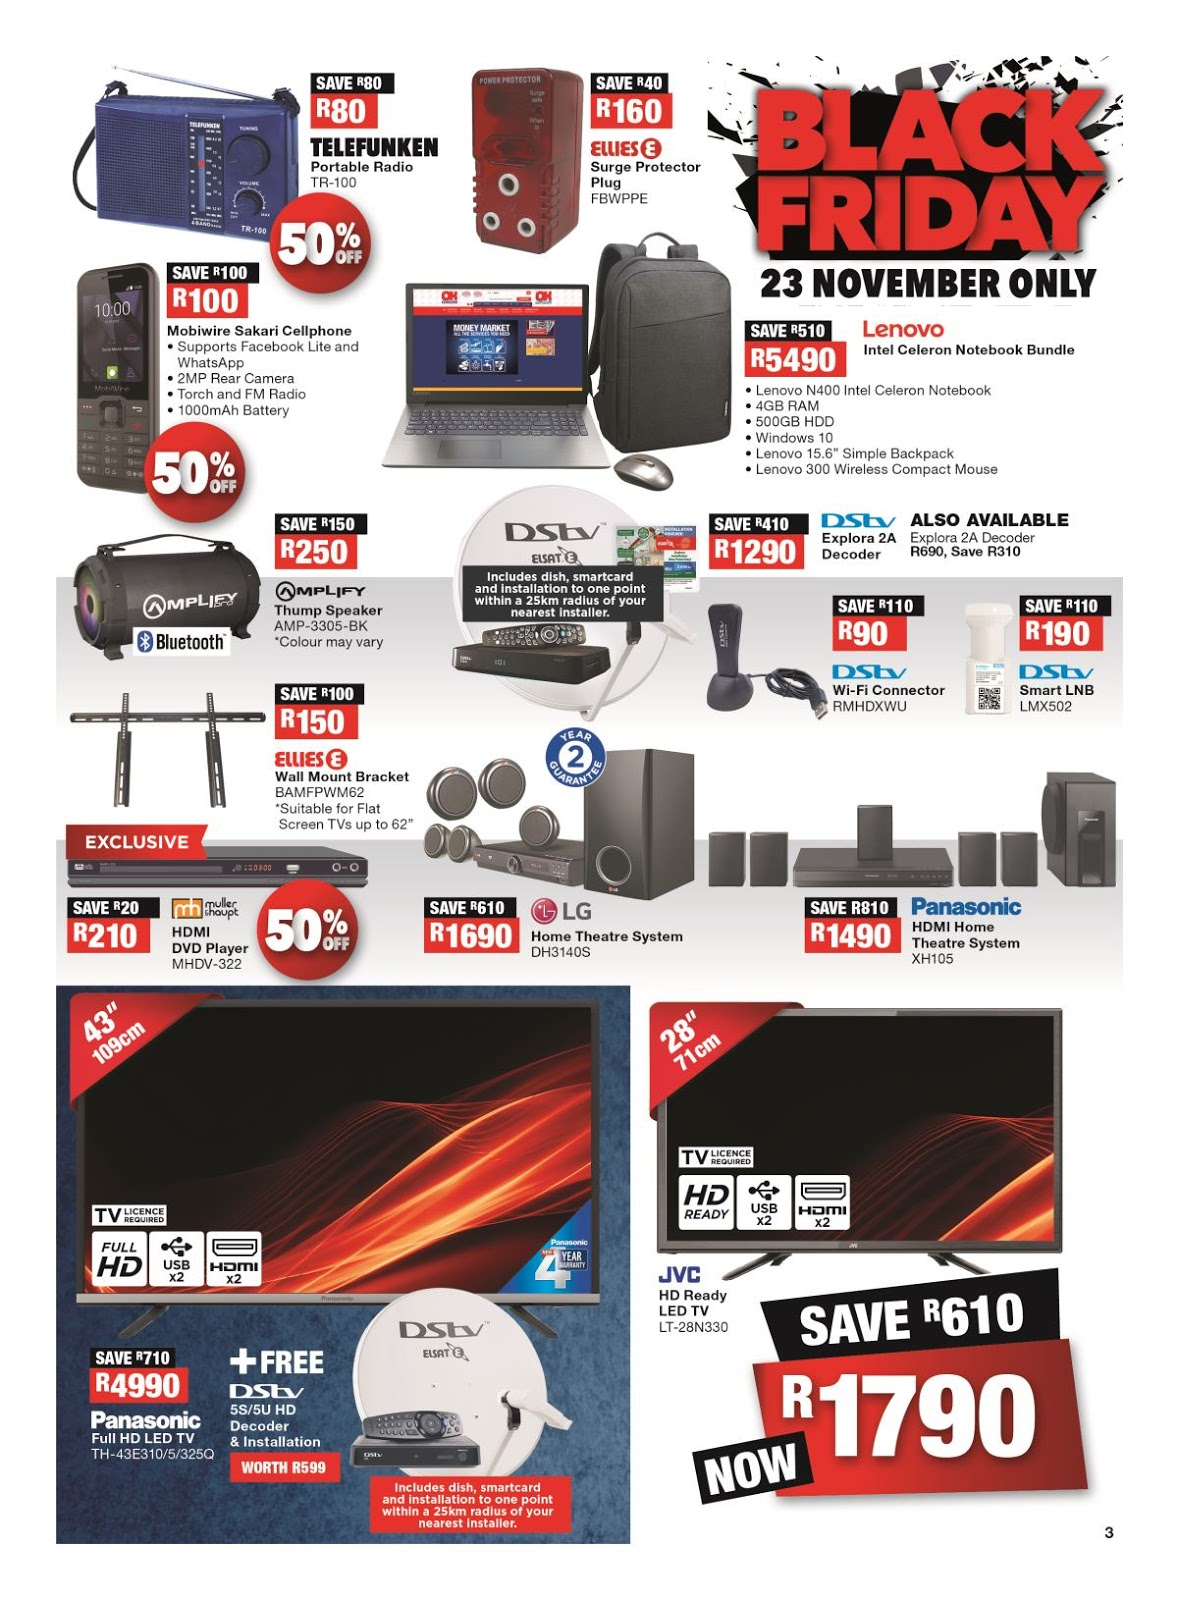 Ok Furniture Black Friday 2018 Deals Prices Revealed Blackfriday